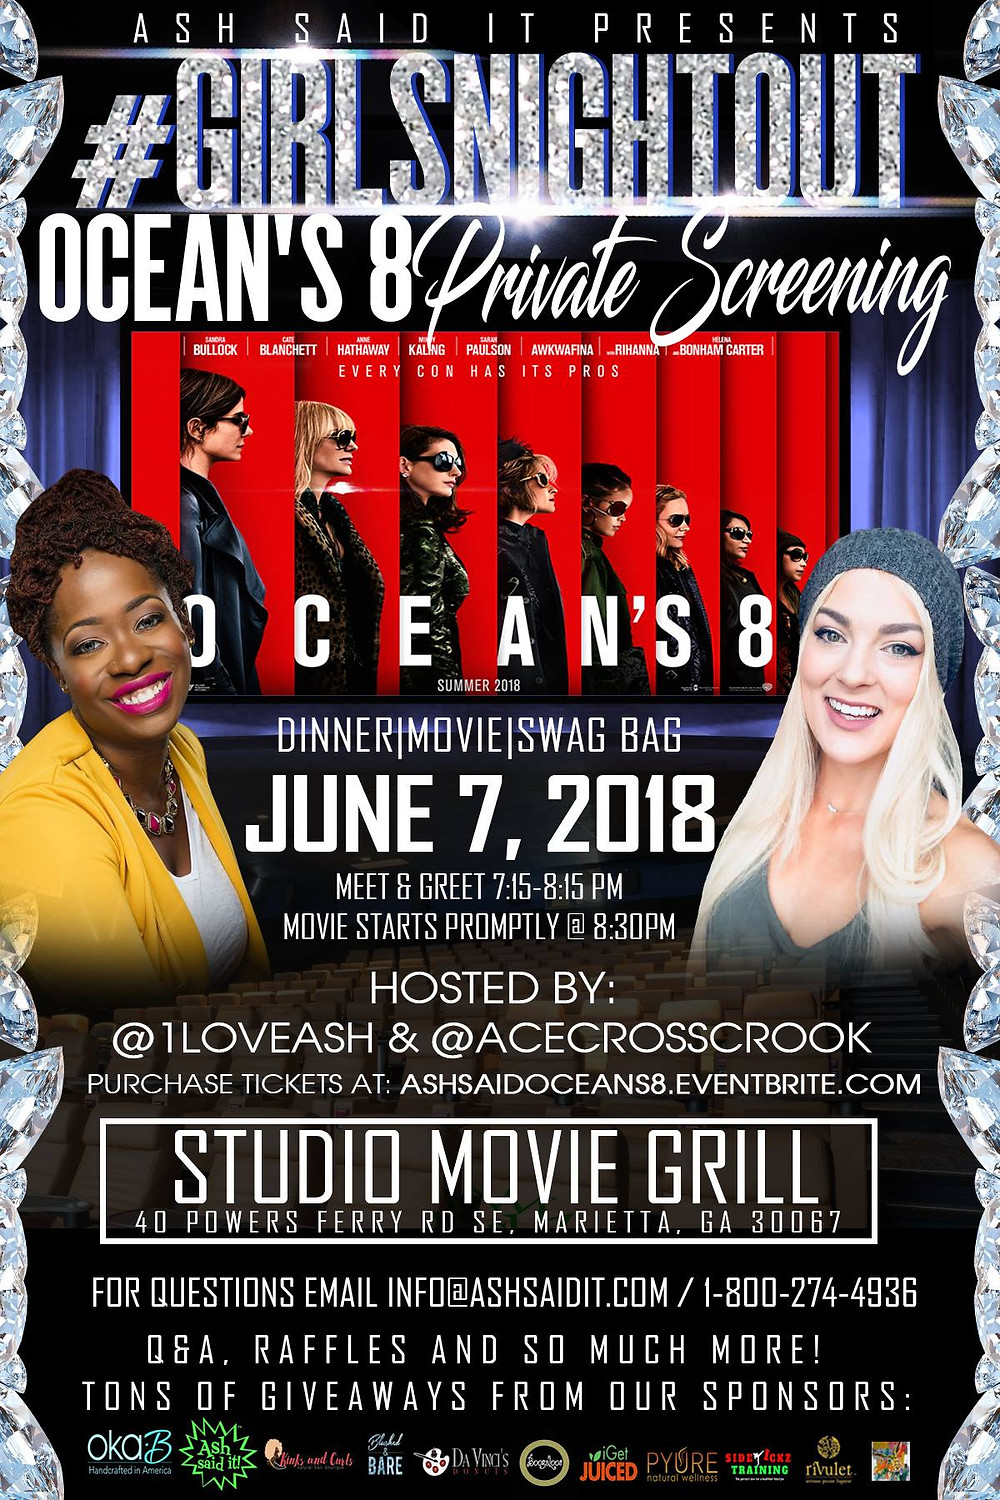 #GirlsNightOut Ocean's 8 Private Screening